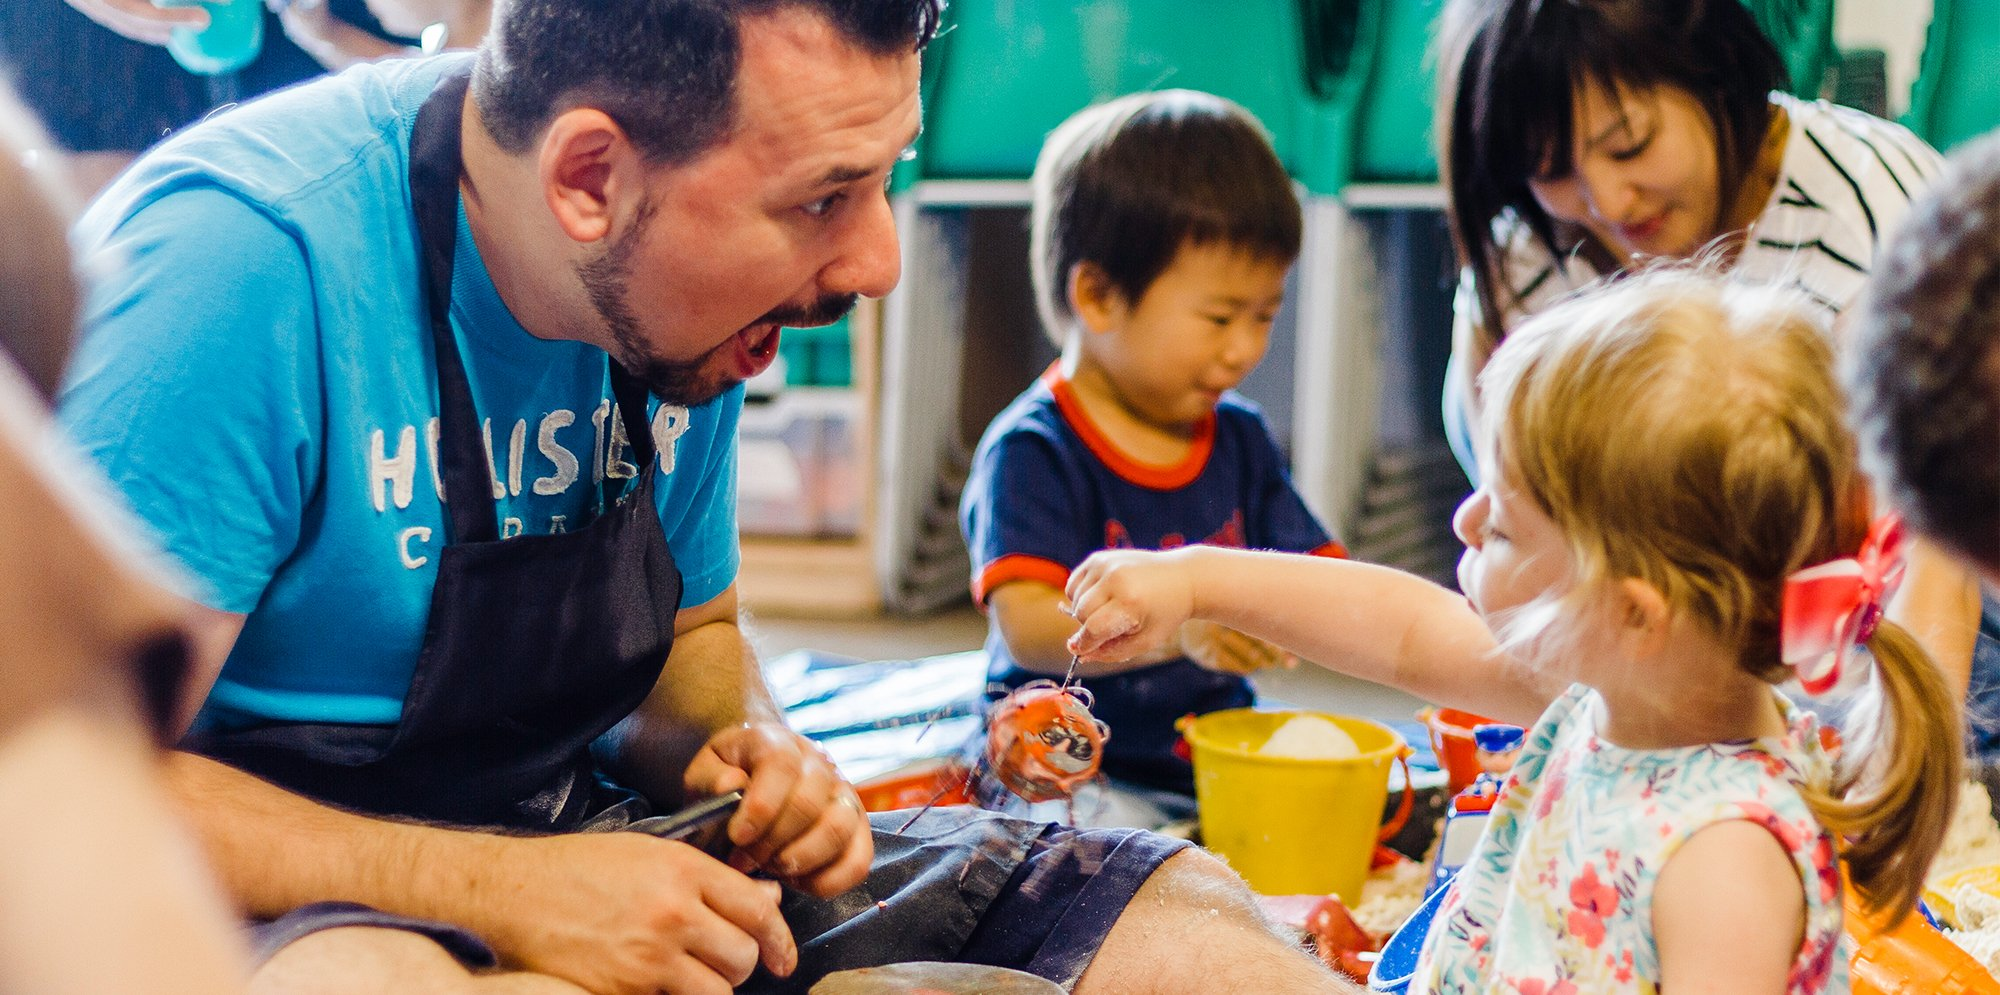 A toddler plays with some crafts while an adult pulls a funny face at them